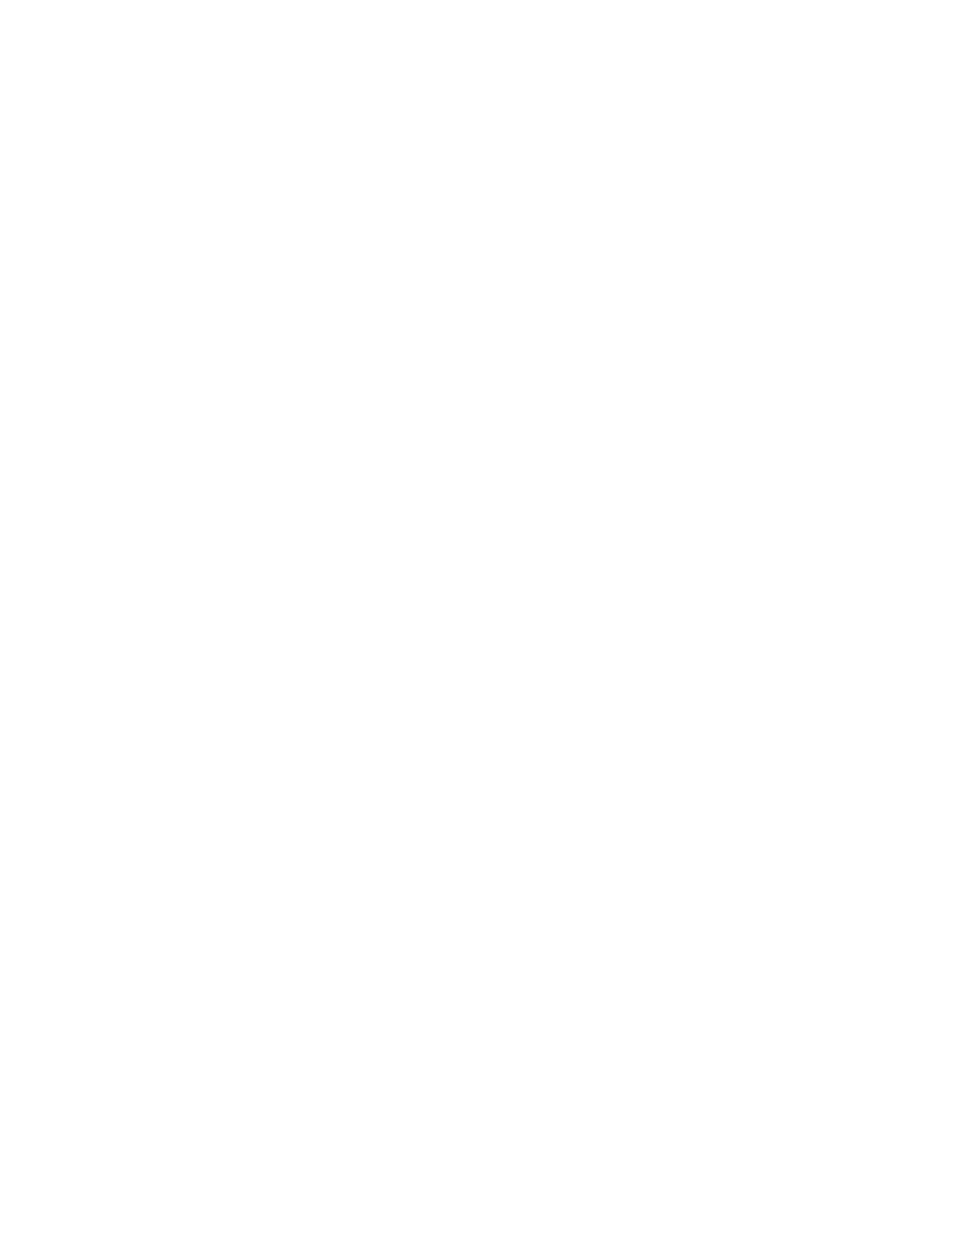 Specifications unpacking instructions generator winco pss20000 specifications unpacking instructions generator winco pss20000 user manual page 5 29 swarovskicordoba Gallery